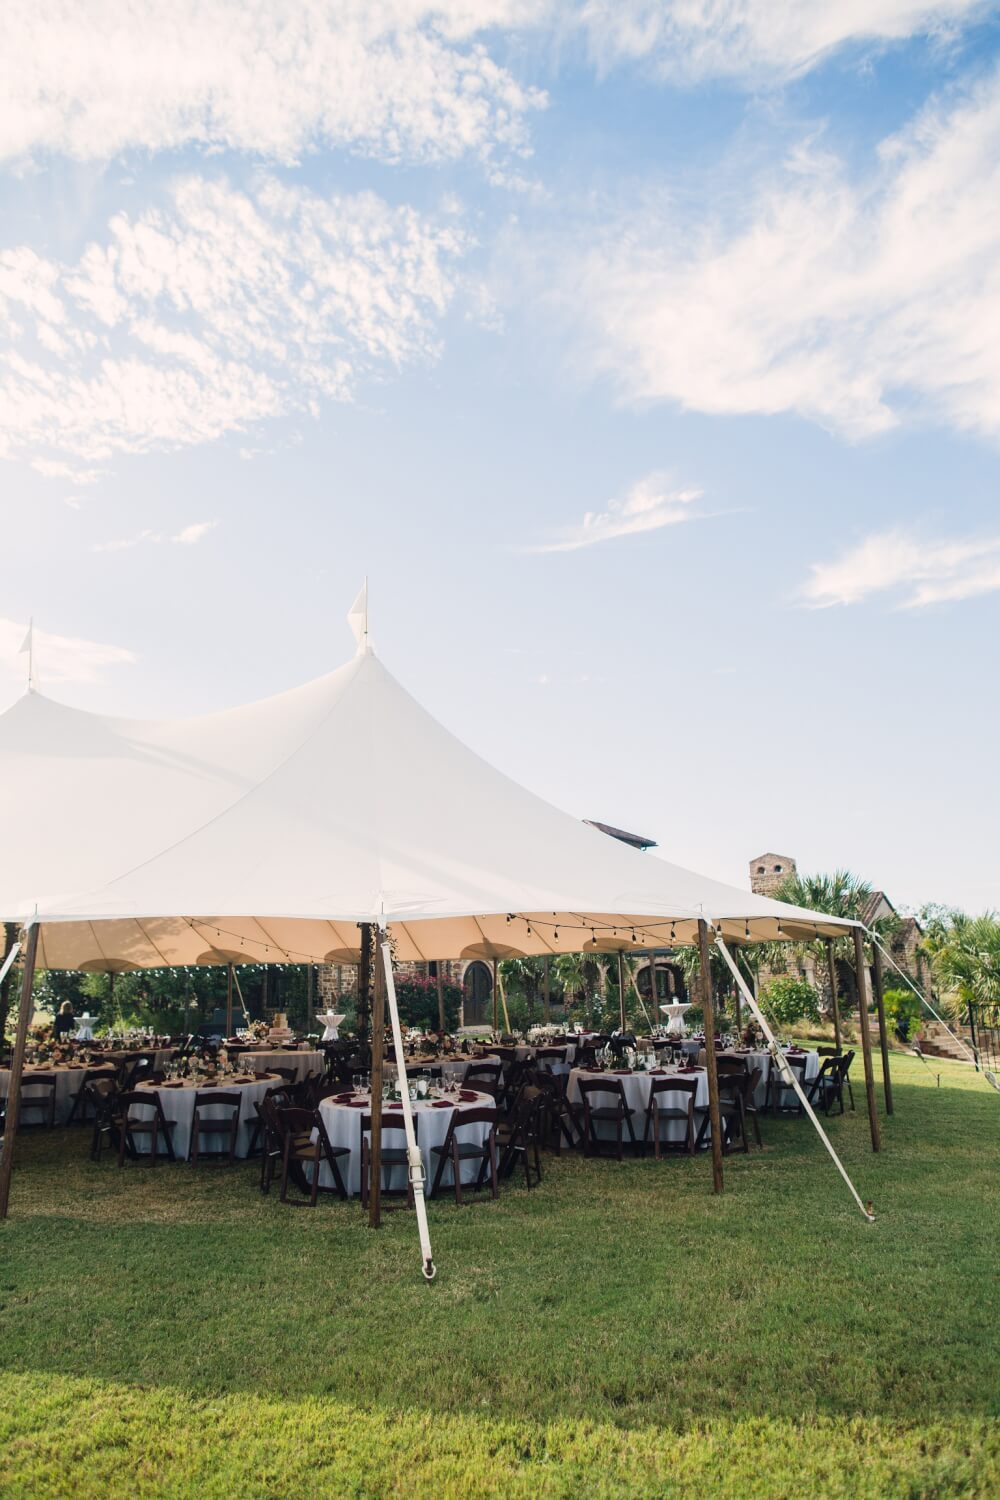 sperry-tent-wedding-private-home-wedding-grit-and-gold-dallas -wedding-planner100 & sperry-tent-wedding-private-home-wedding-grit-and-gold-dallas ...